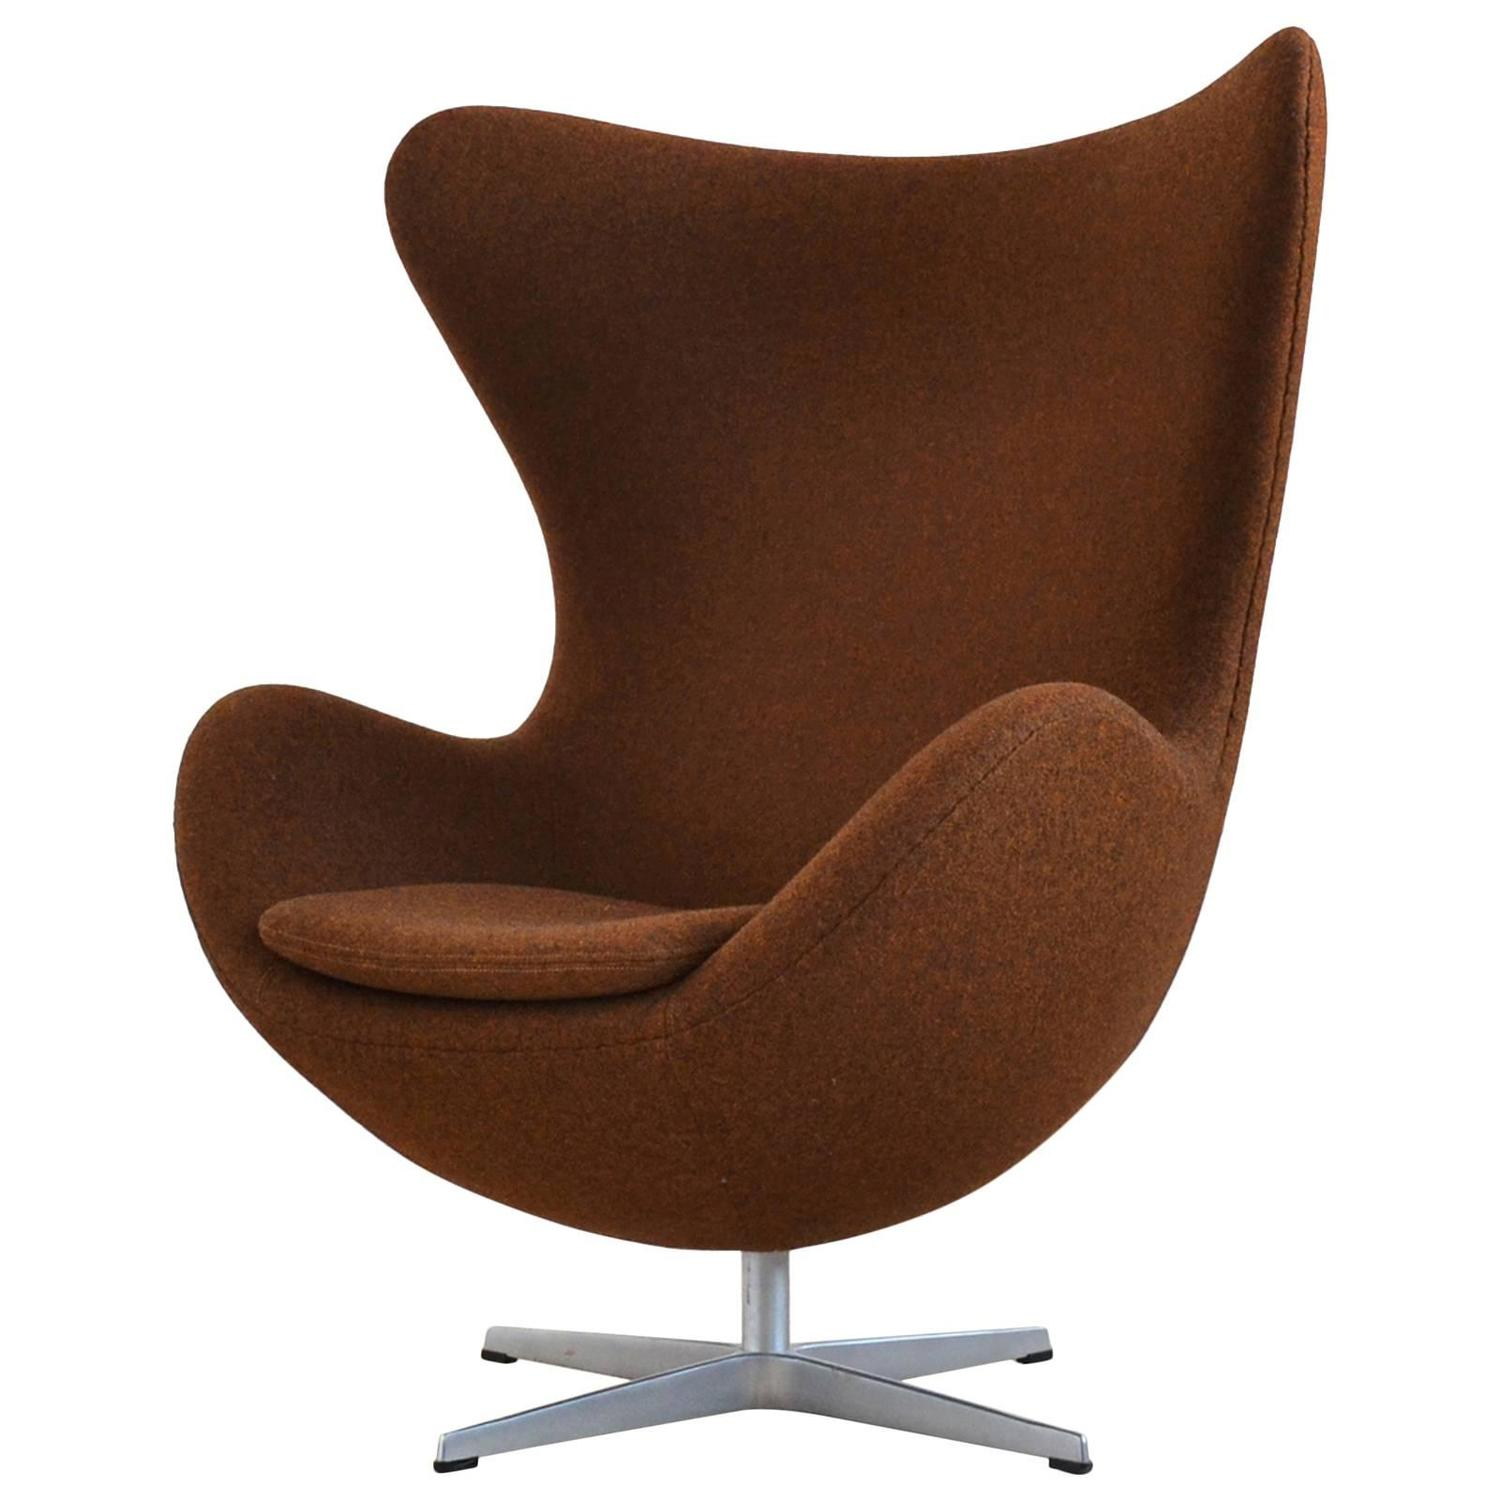 Arne jacobsen egg chair by fritz hansen in divina melange for Egg chair jacobsen